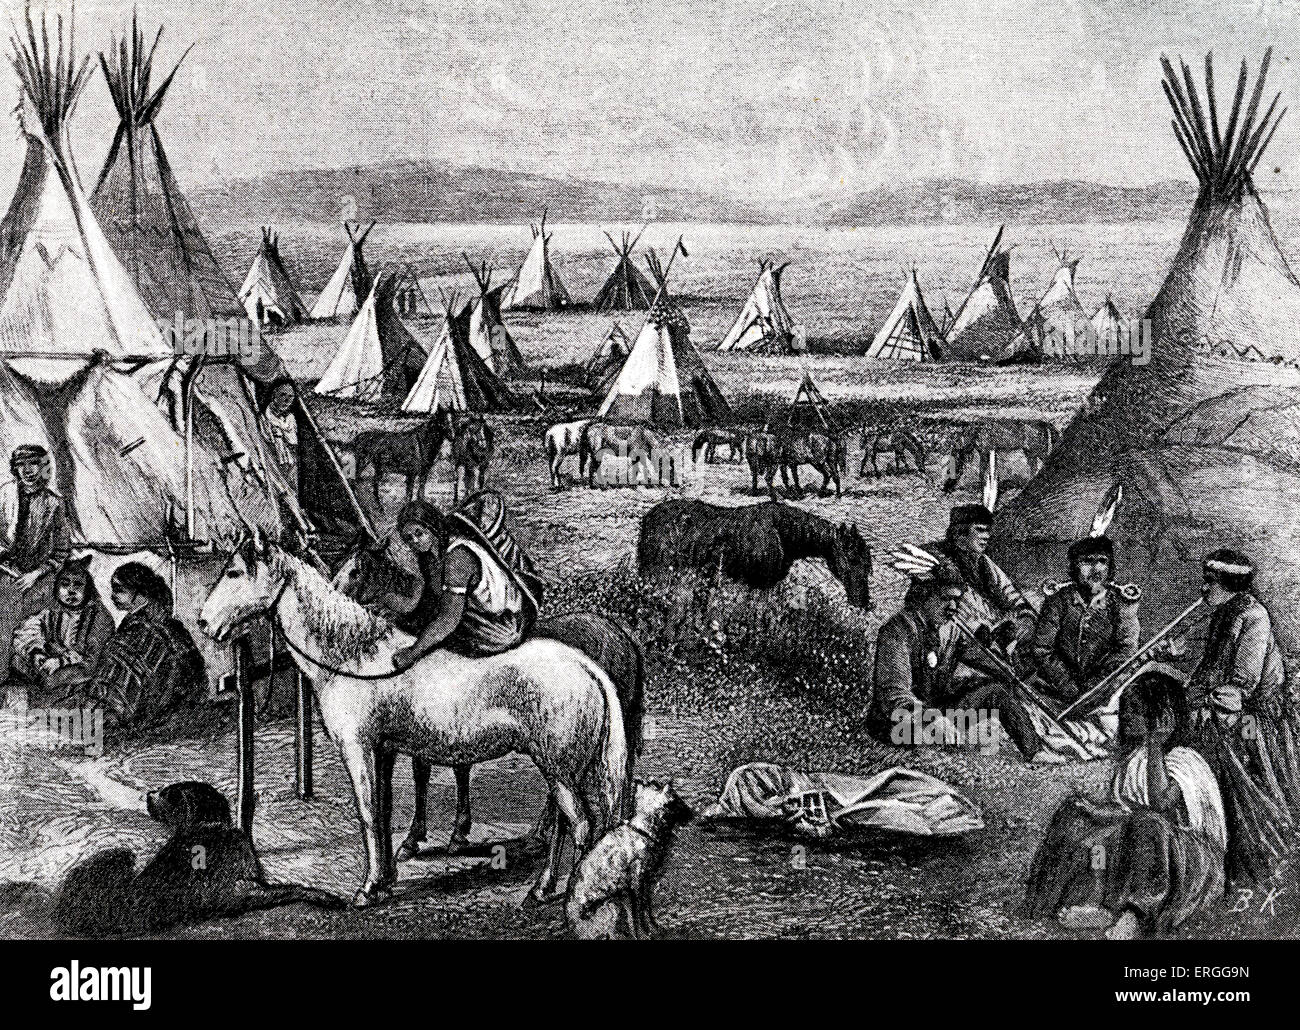 Navajo Indians specifically 'Parushapats' encamped on the plains of Arizona c. 1880s.  Illustration by Bohuslav - Stock Image